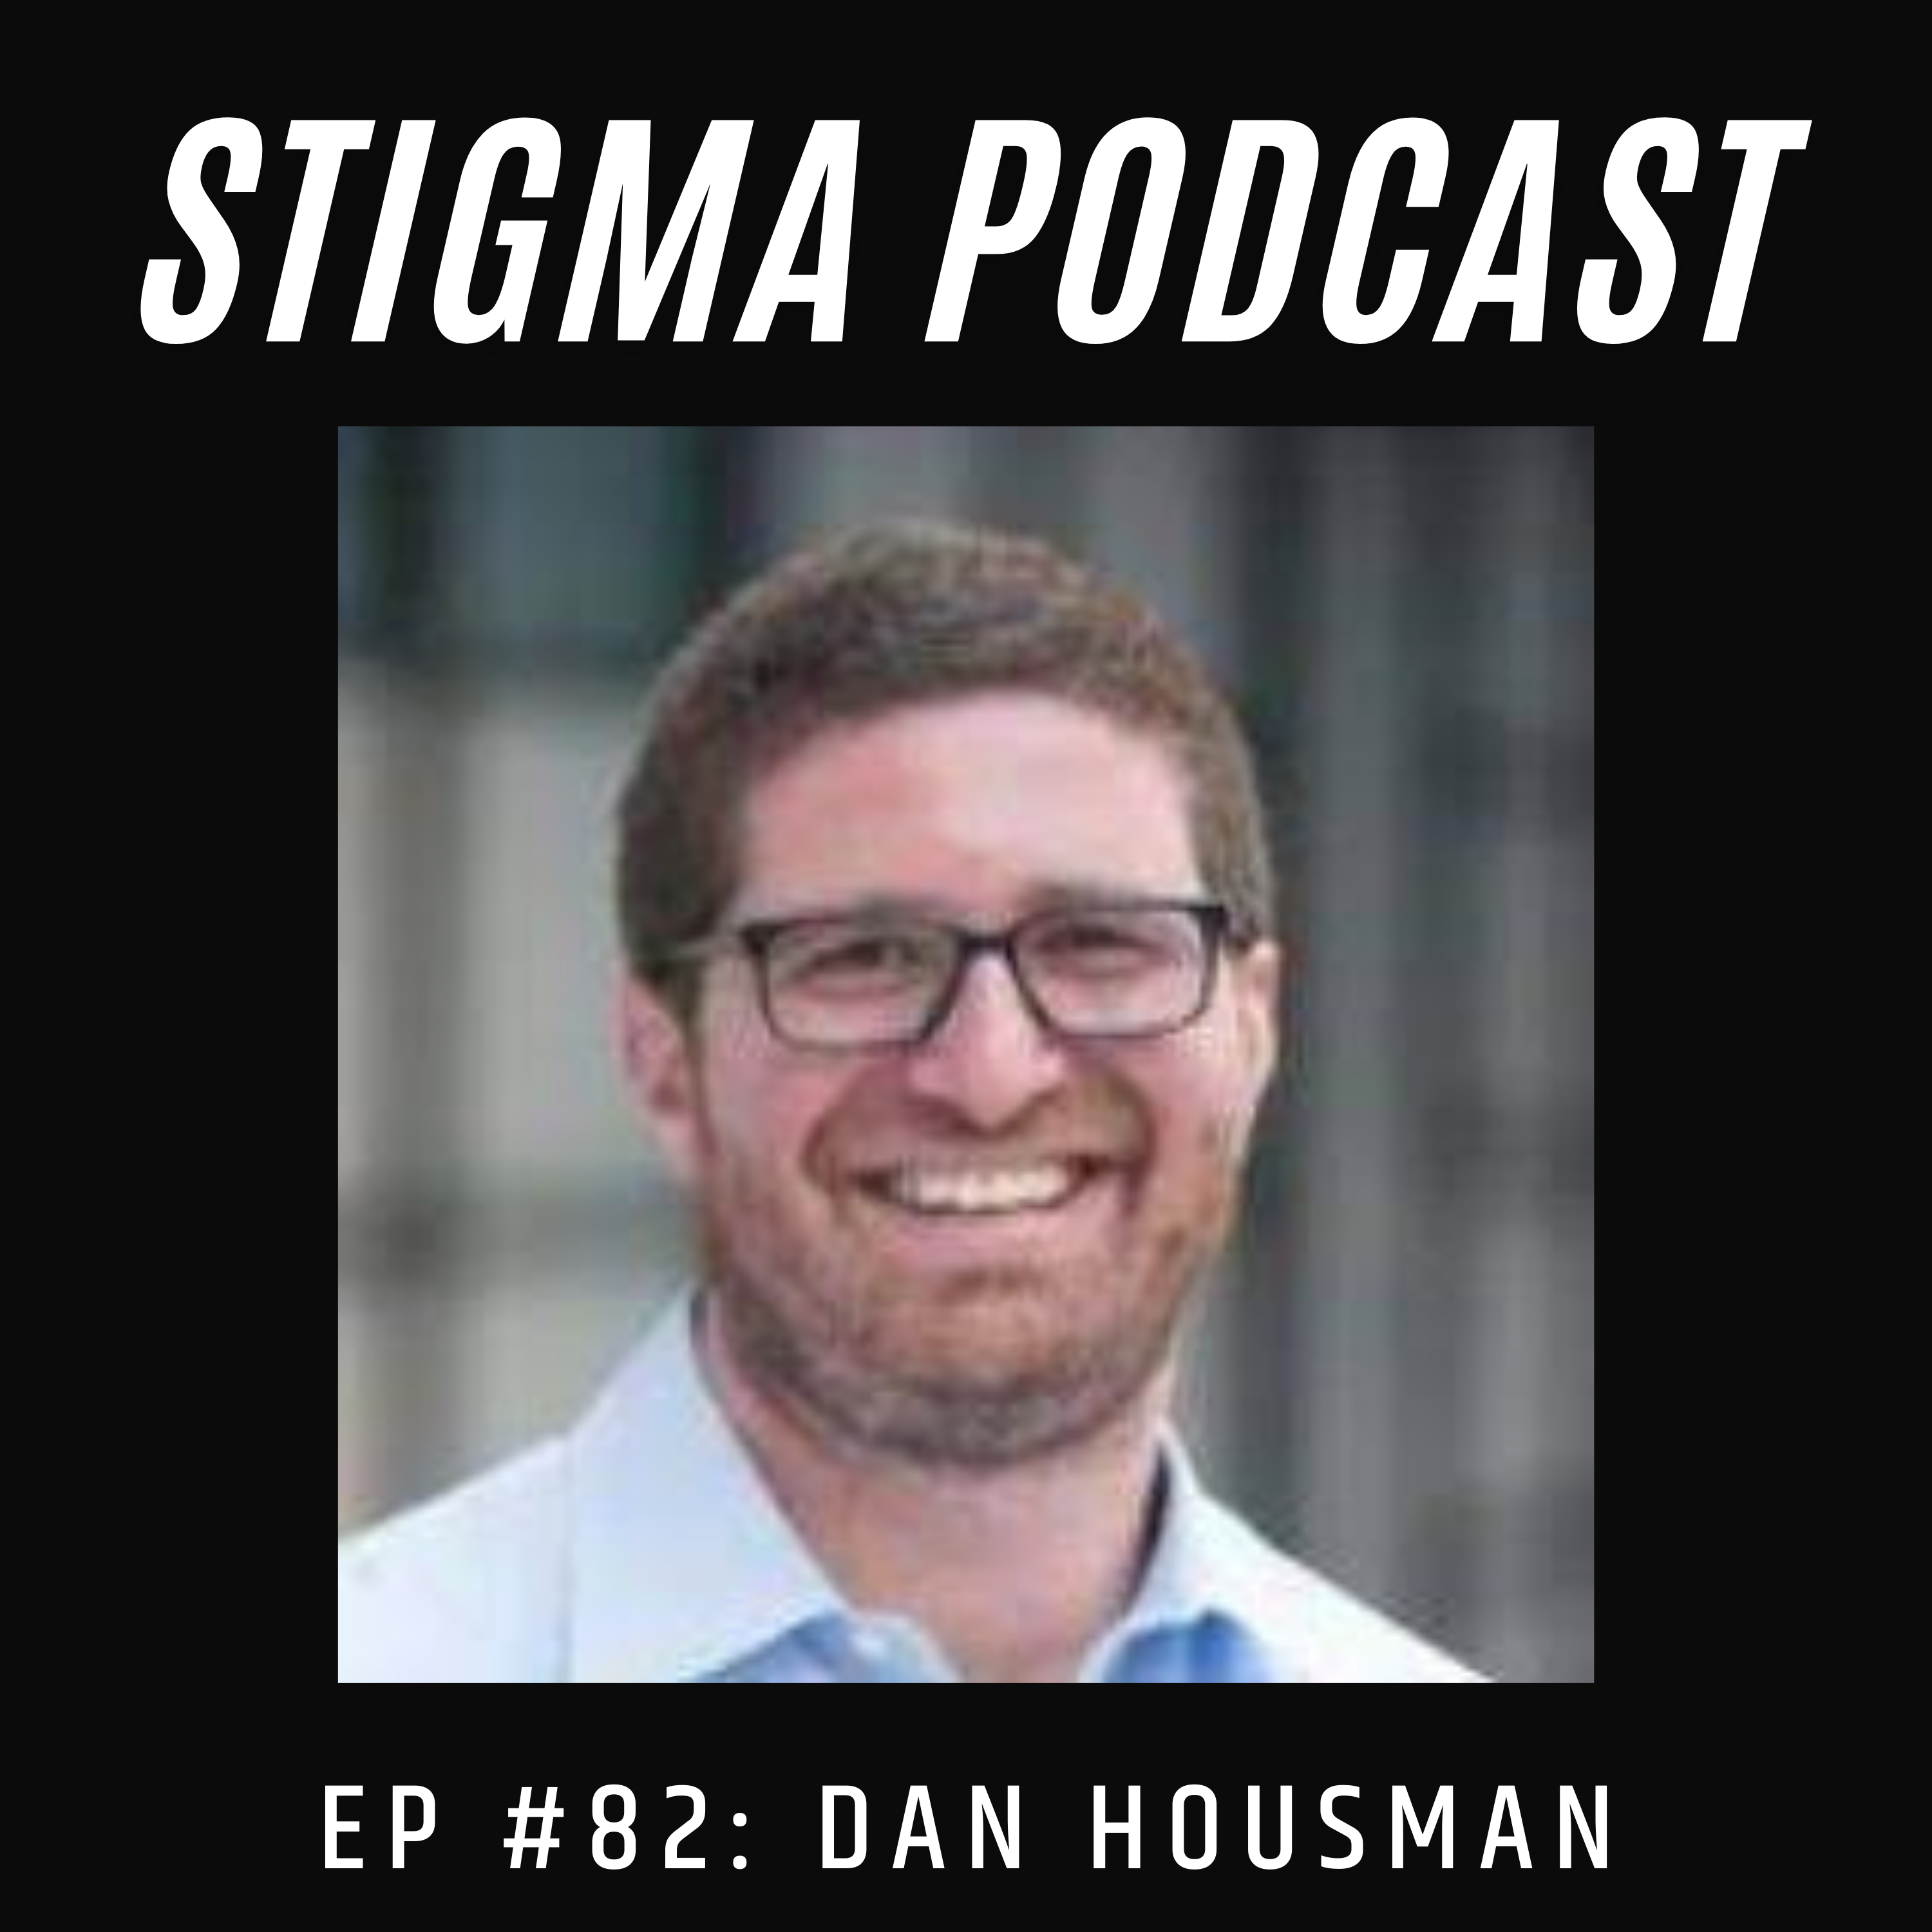 Stigma Podcast - Mental Health - #82 - Eating Disorders - Prevalence, and Lack of Solutions with Courage Therapeutics Founder Dan Housman